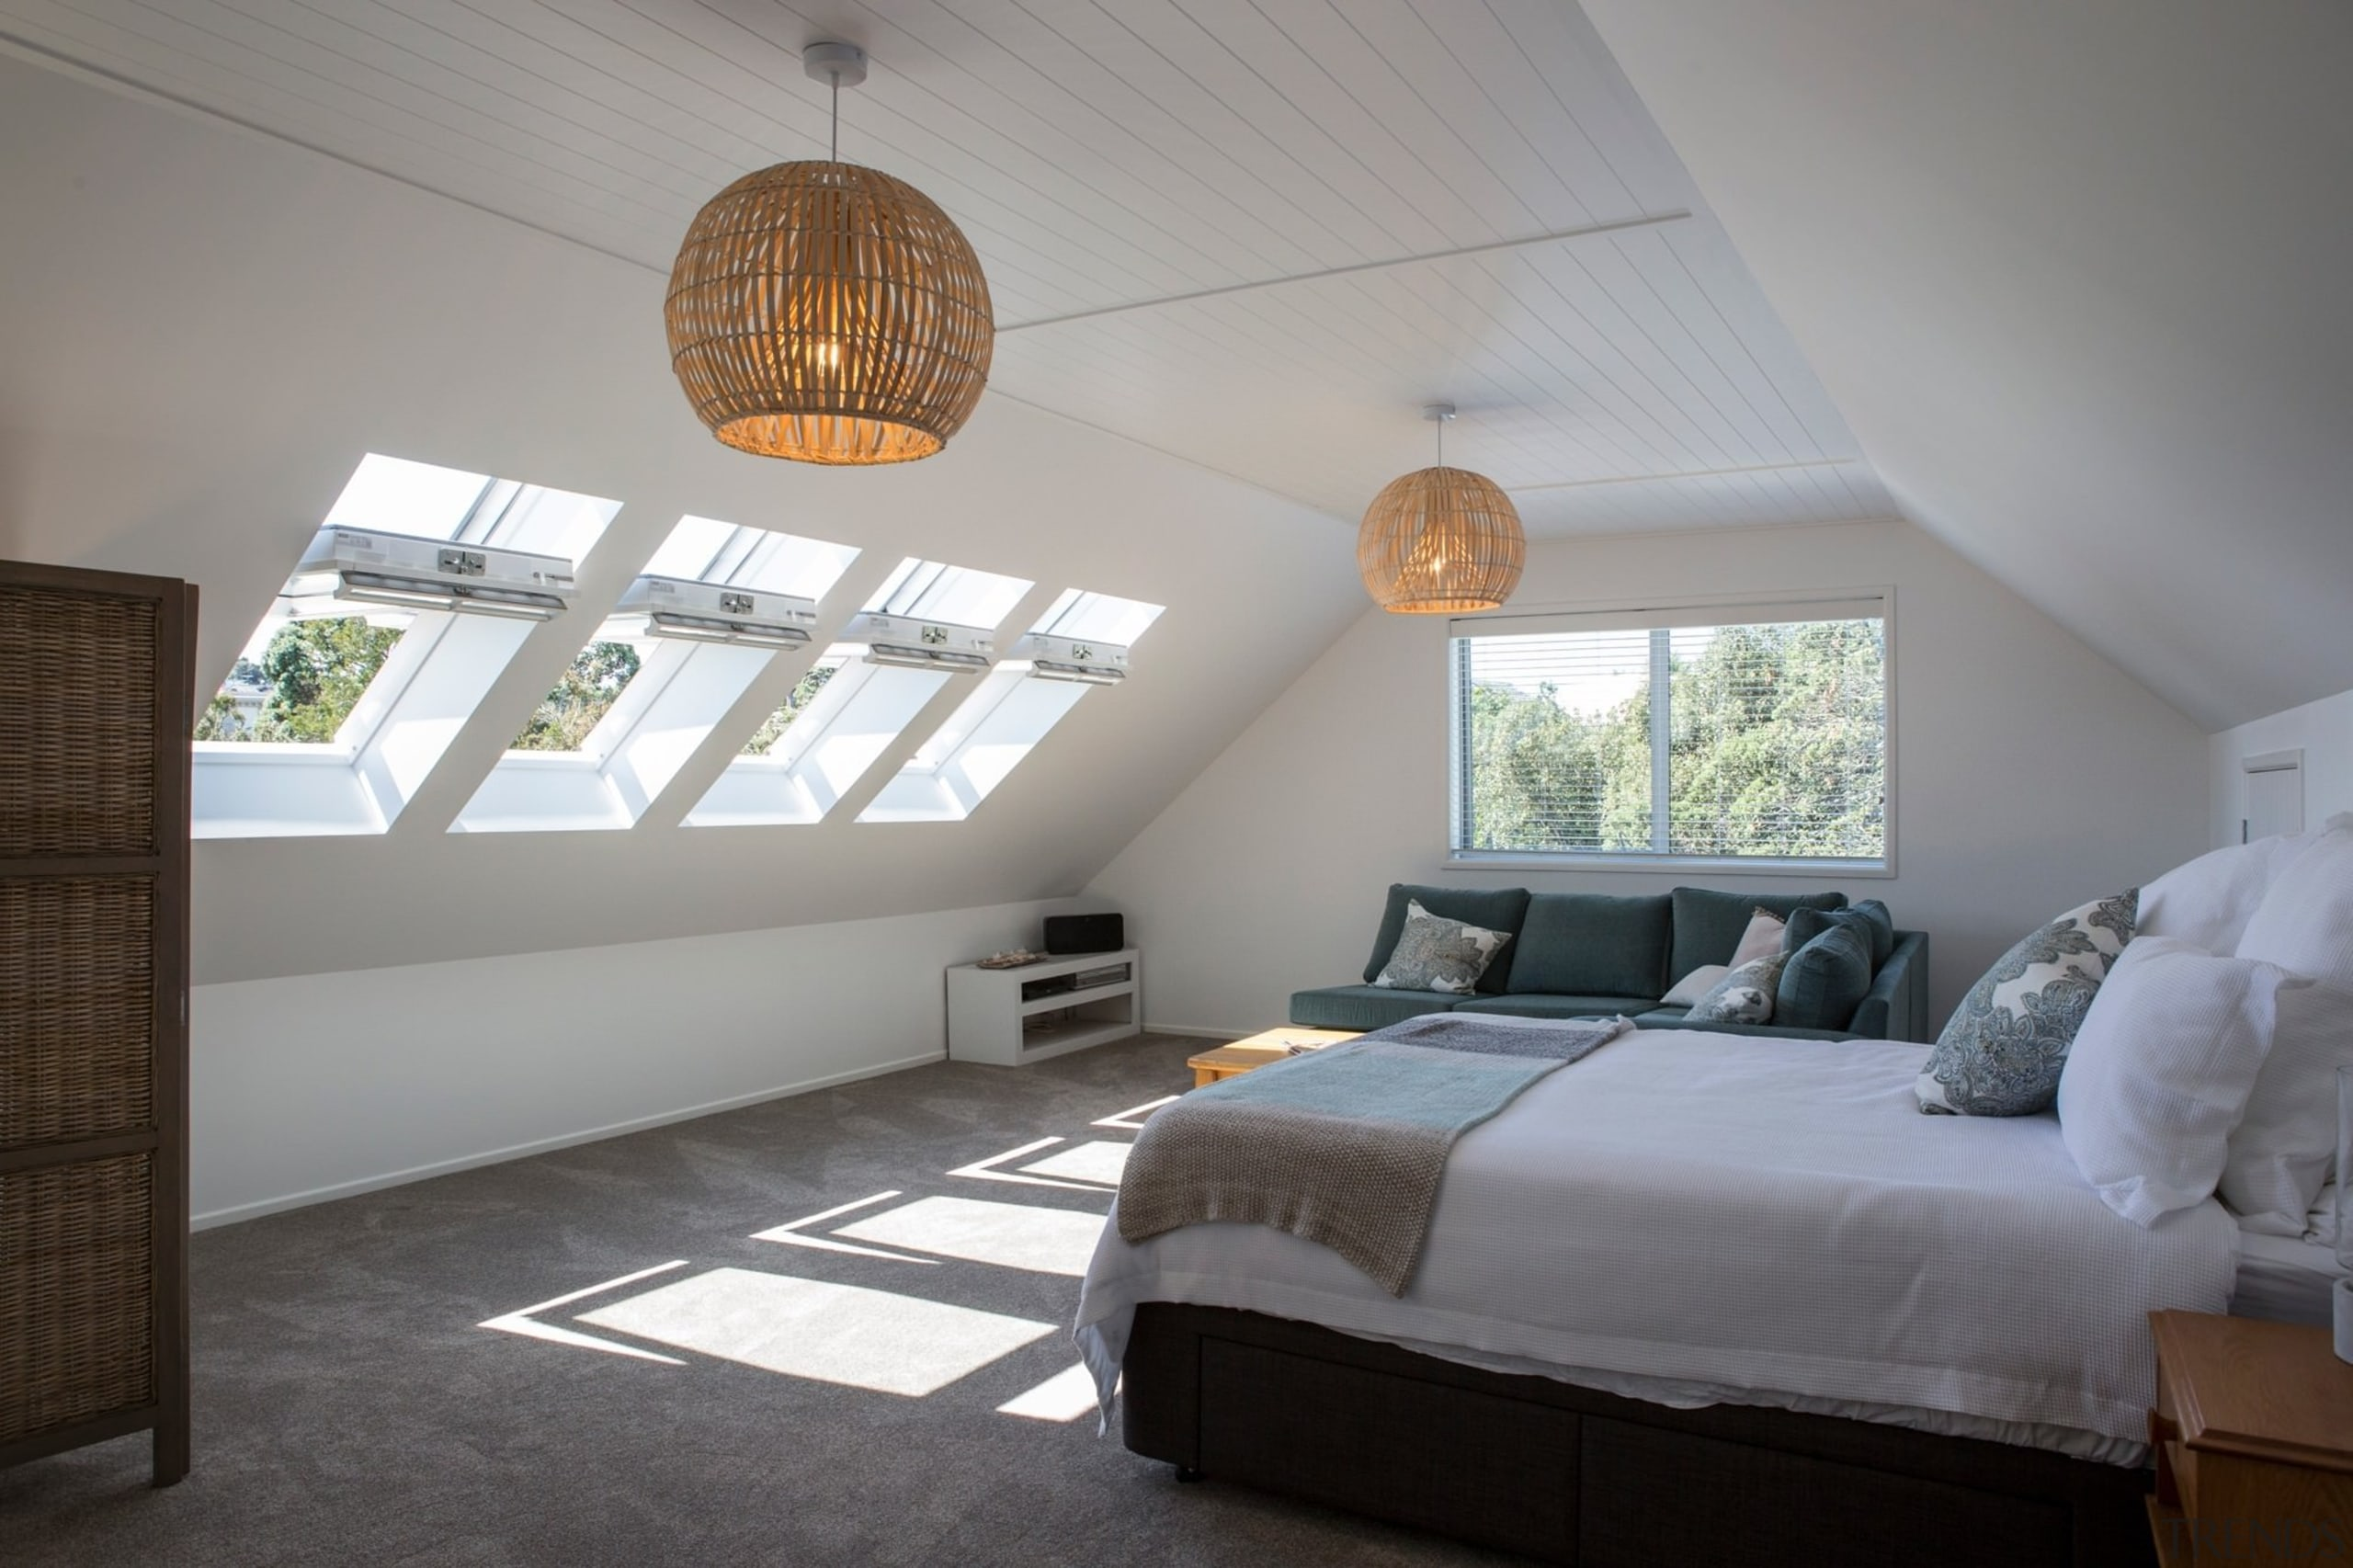 Master bedroom with leafy views and ample sunlight architecture, bed frame, bedroom, ceiling, daylighting, estate, home, house, interior design, real estate, room, gray